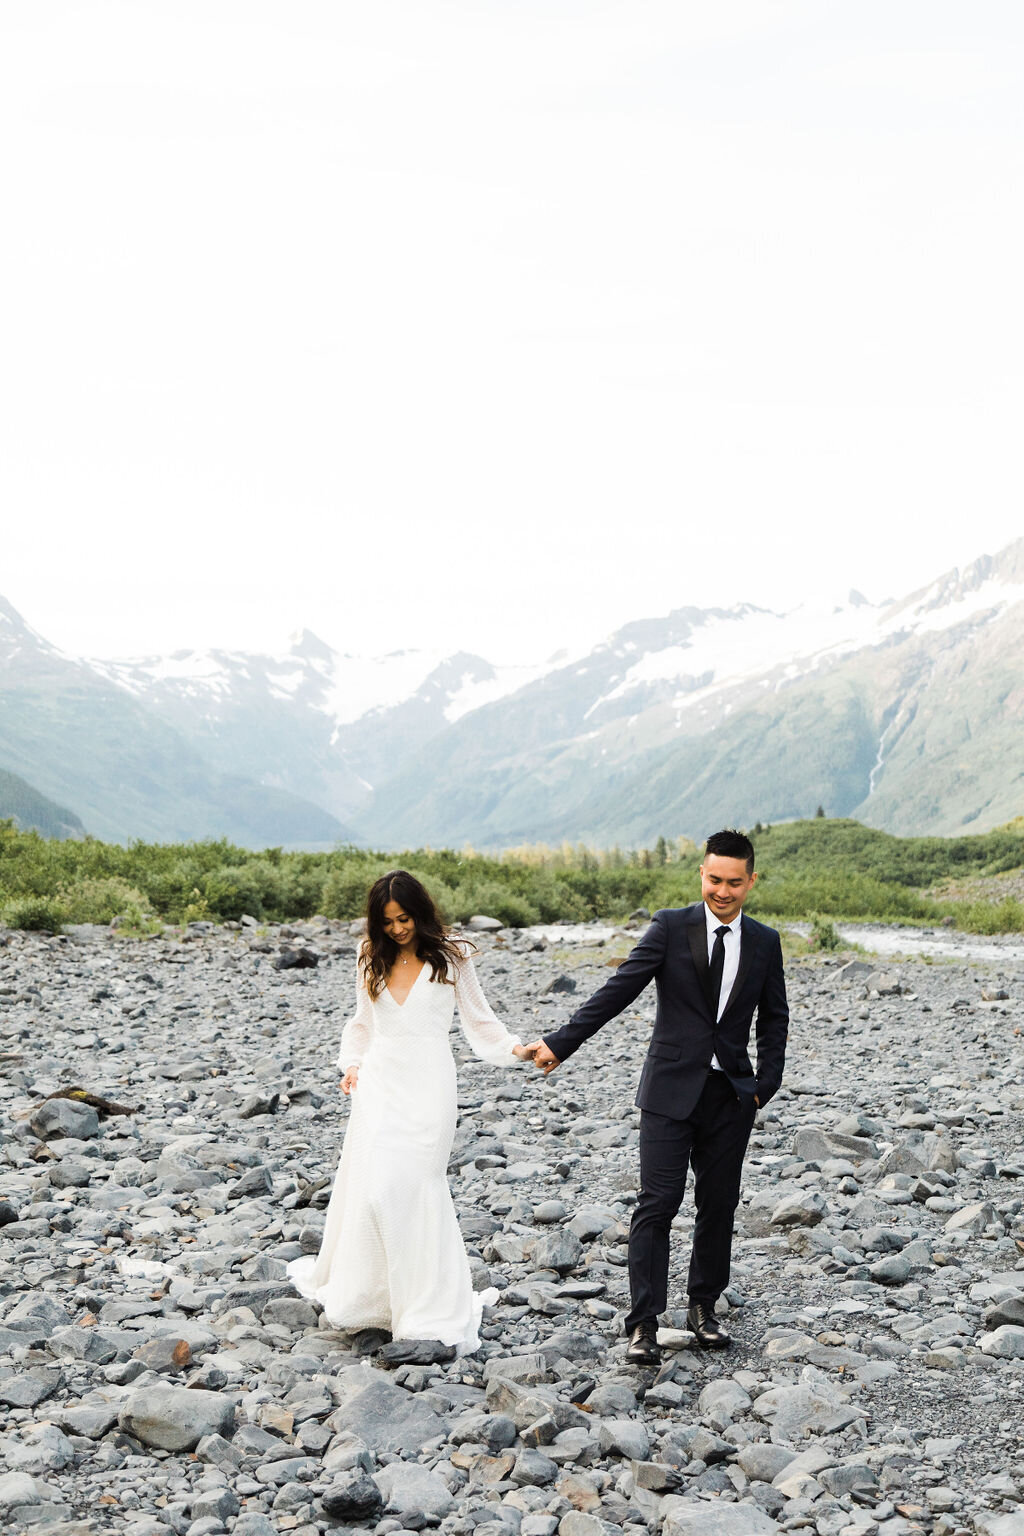 Adventure_Elopement-43